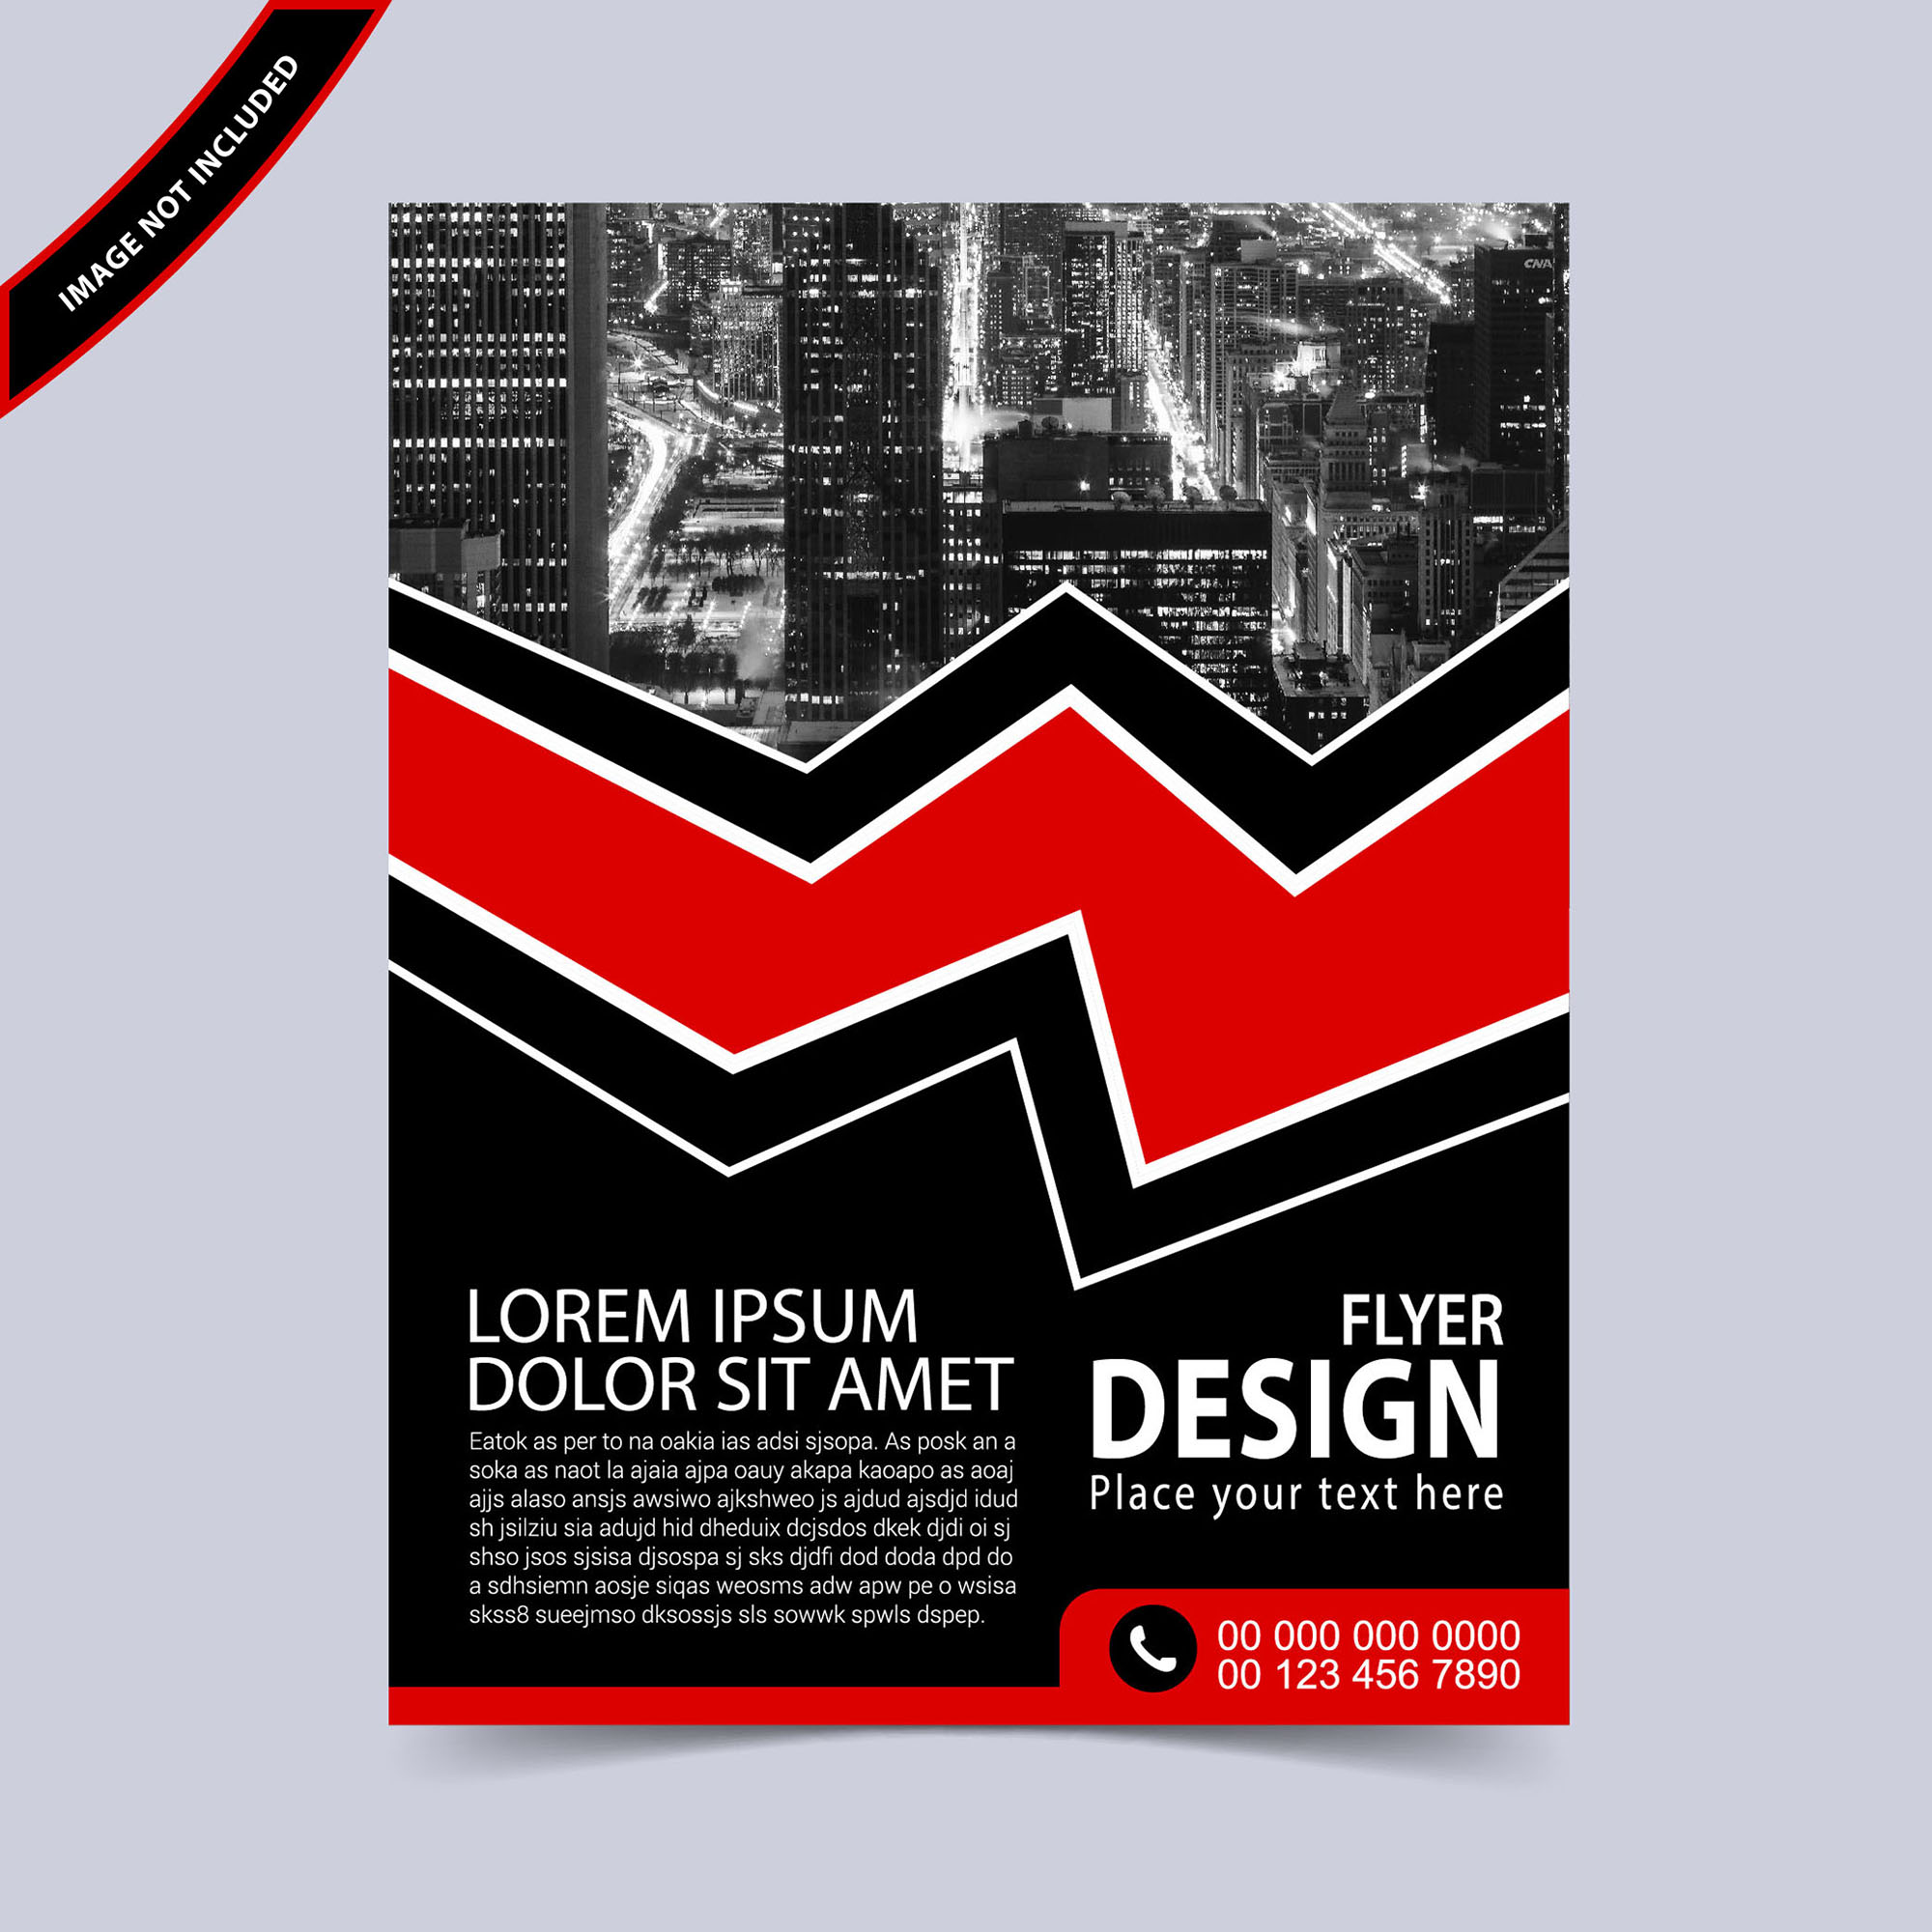 Free Editable Flyer Template Flyer Free Download Wisxicom - Editable brochure templates